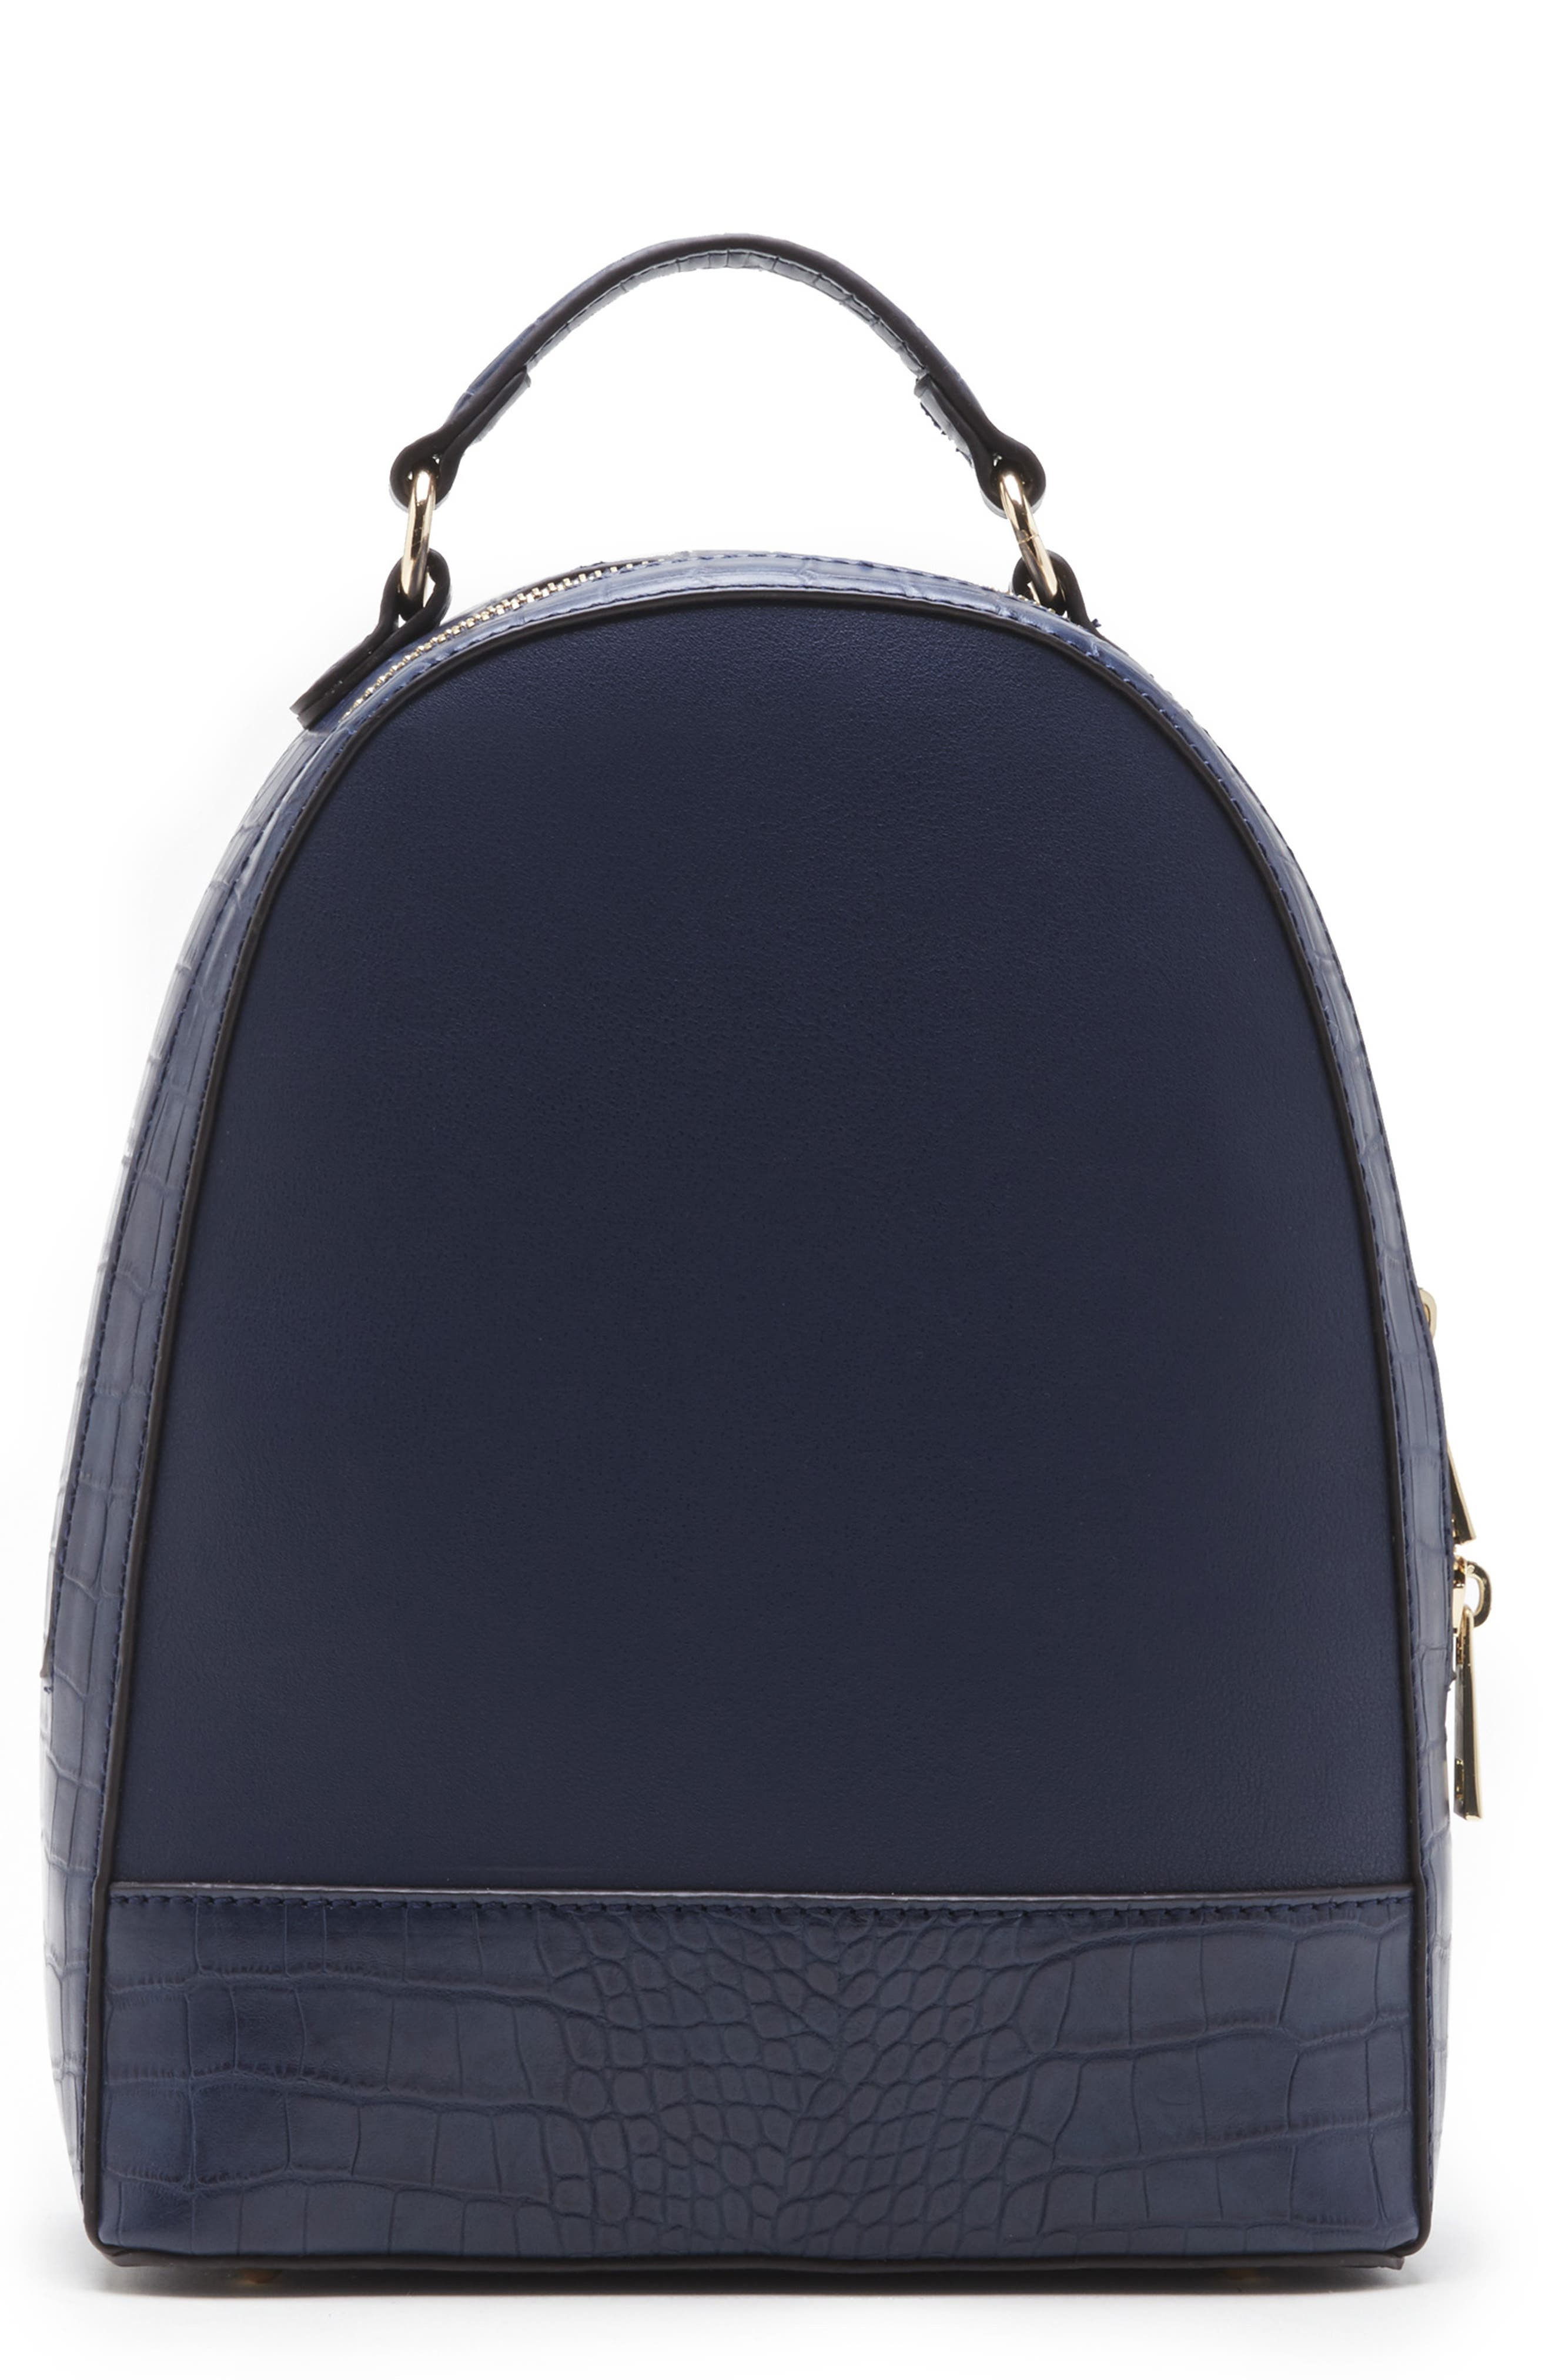 SOLE SOCIETY, Jamya Croc Embossed Faux Leather Backpack, Main thumbnail 1, color, MIDNIGHT